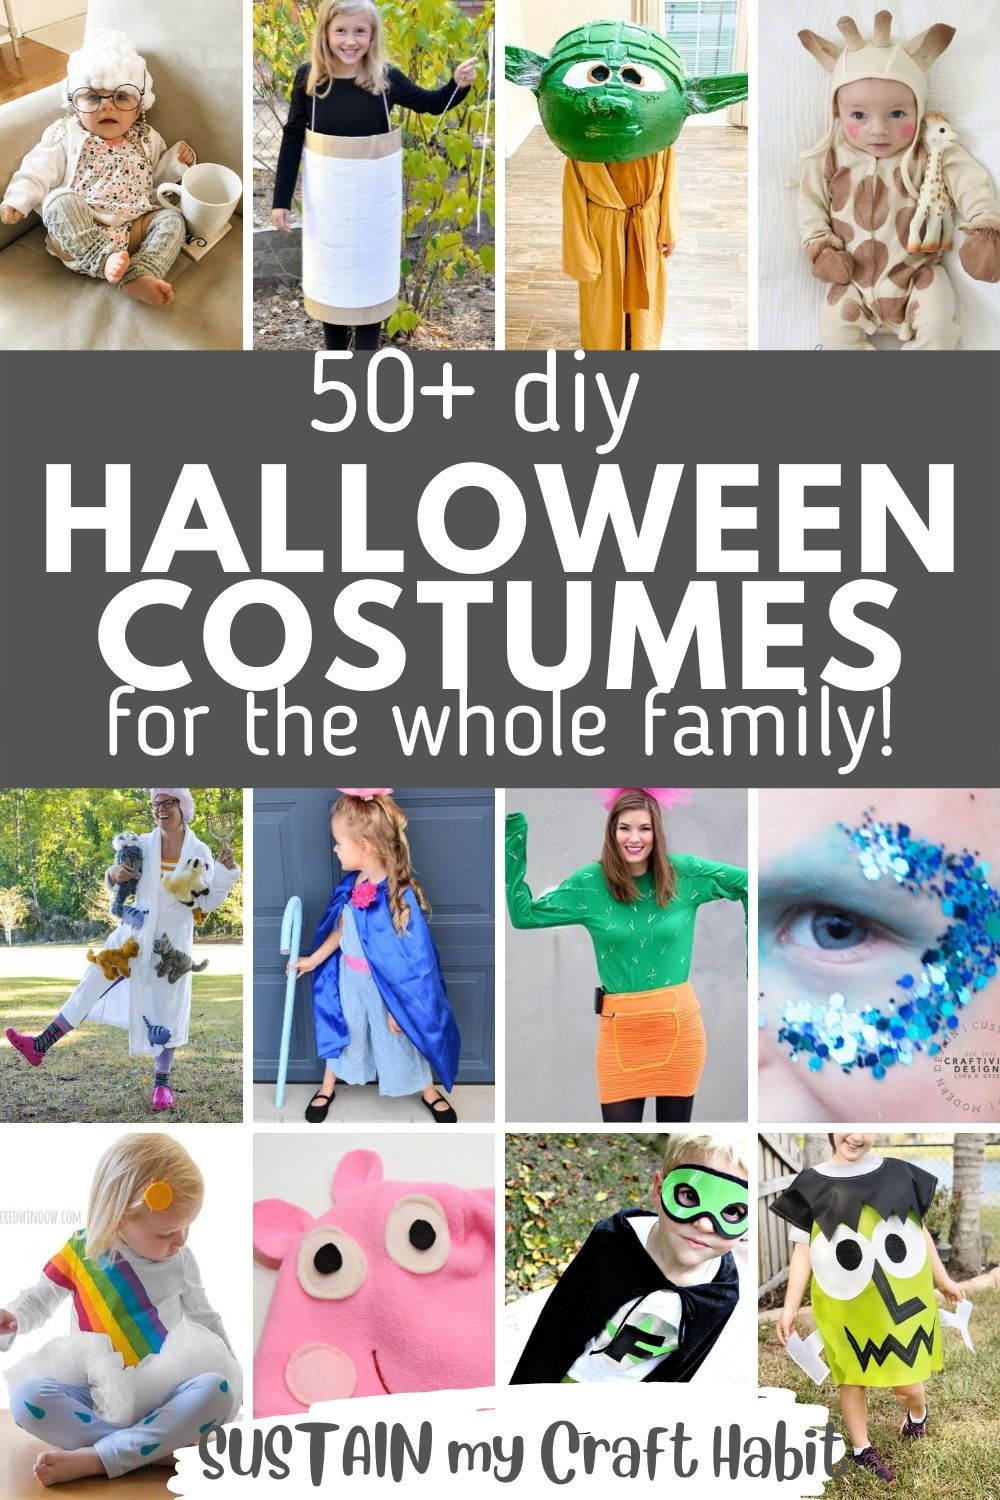 Collage of images as examples of cute DIY Halloween costumes to make.